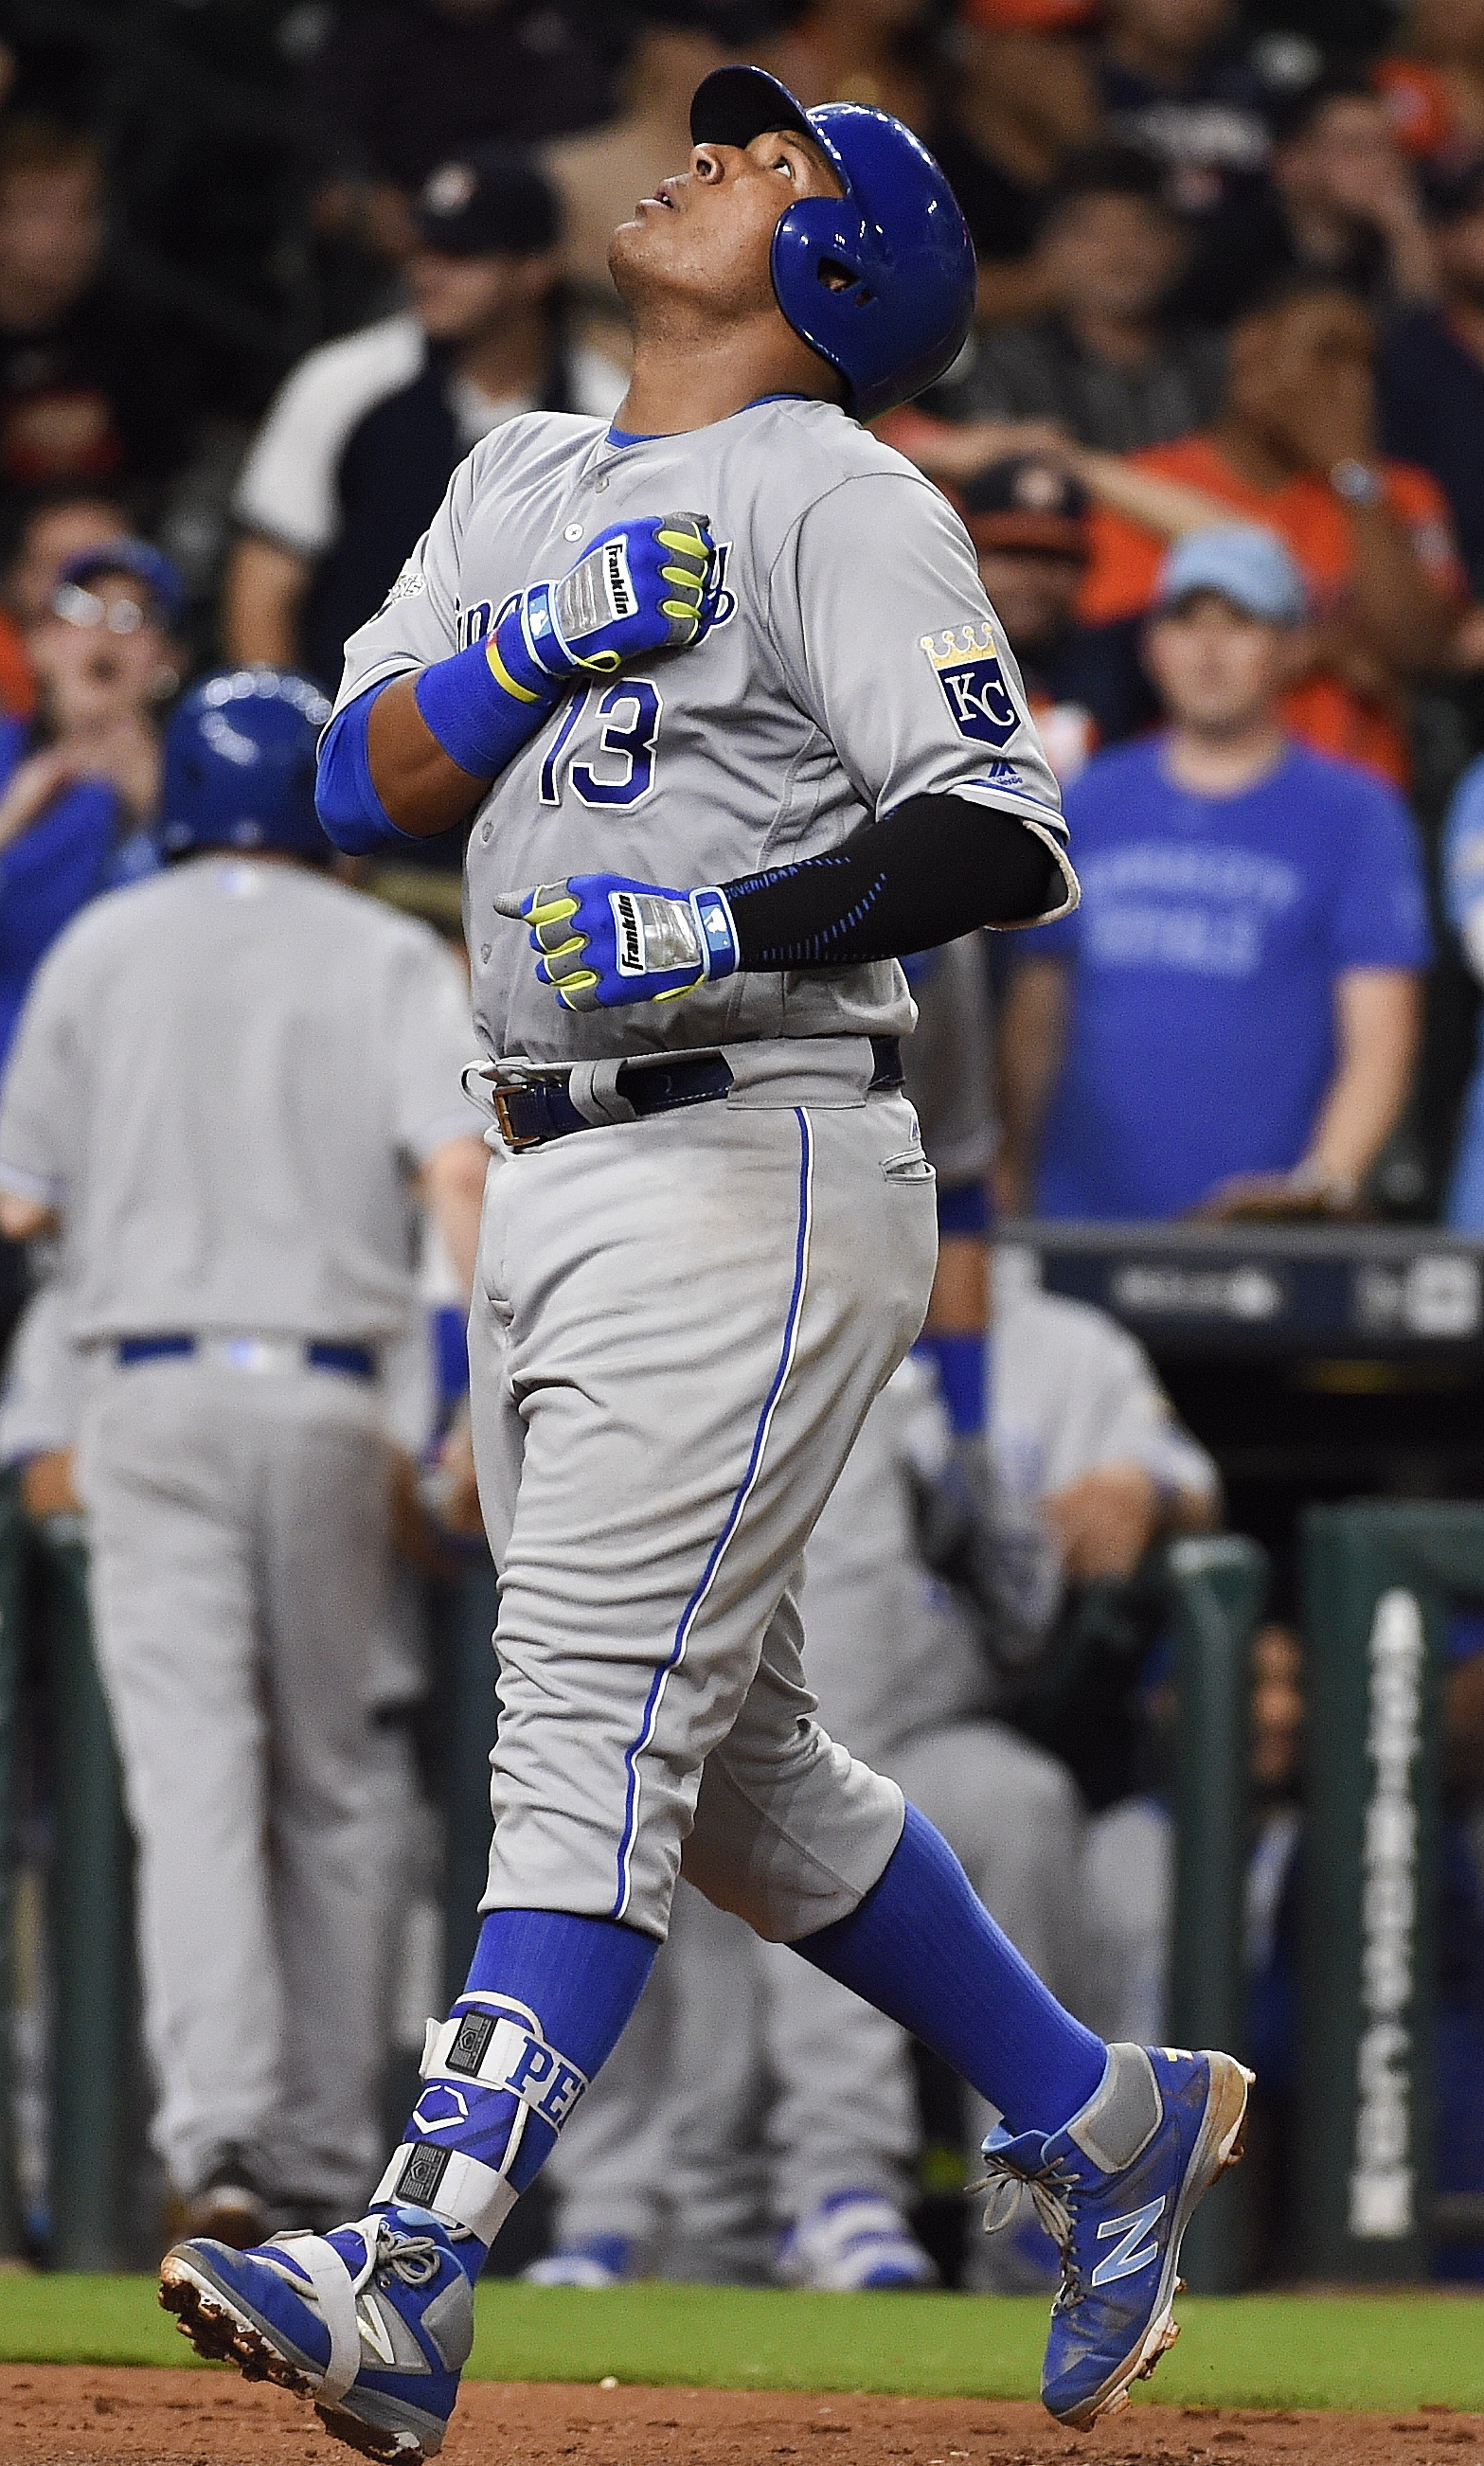 Kansas City Royals' Salvador Perez (13) celebrates his two-run home run in the eighth inning of a baseball game against the Houston Astros, Wednesday, April 13, 2016, in Houston. (AP Photo/Eric Christian Smith)